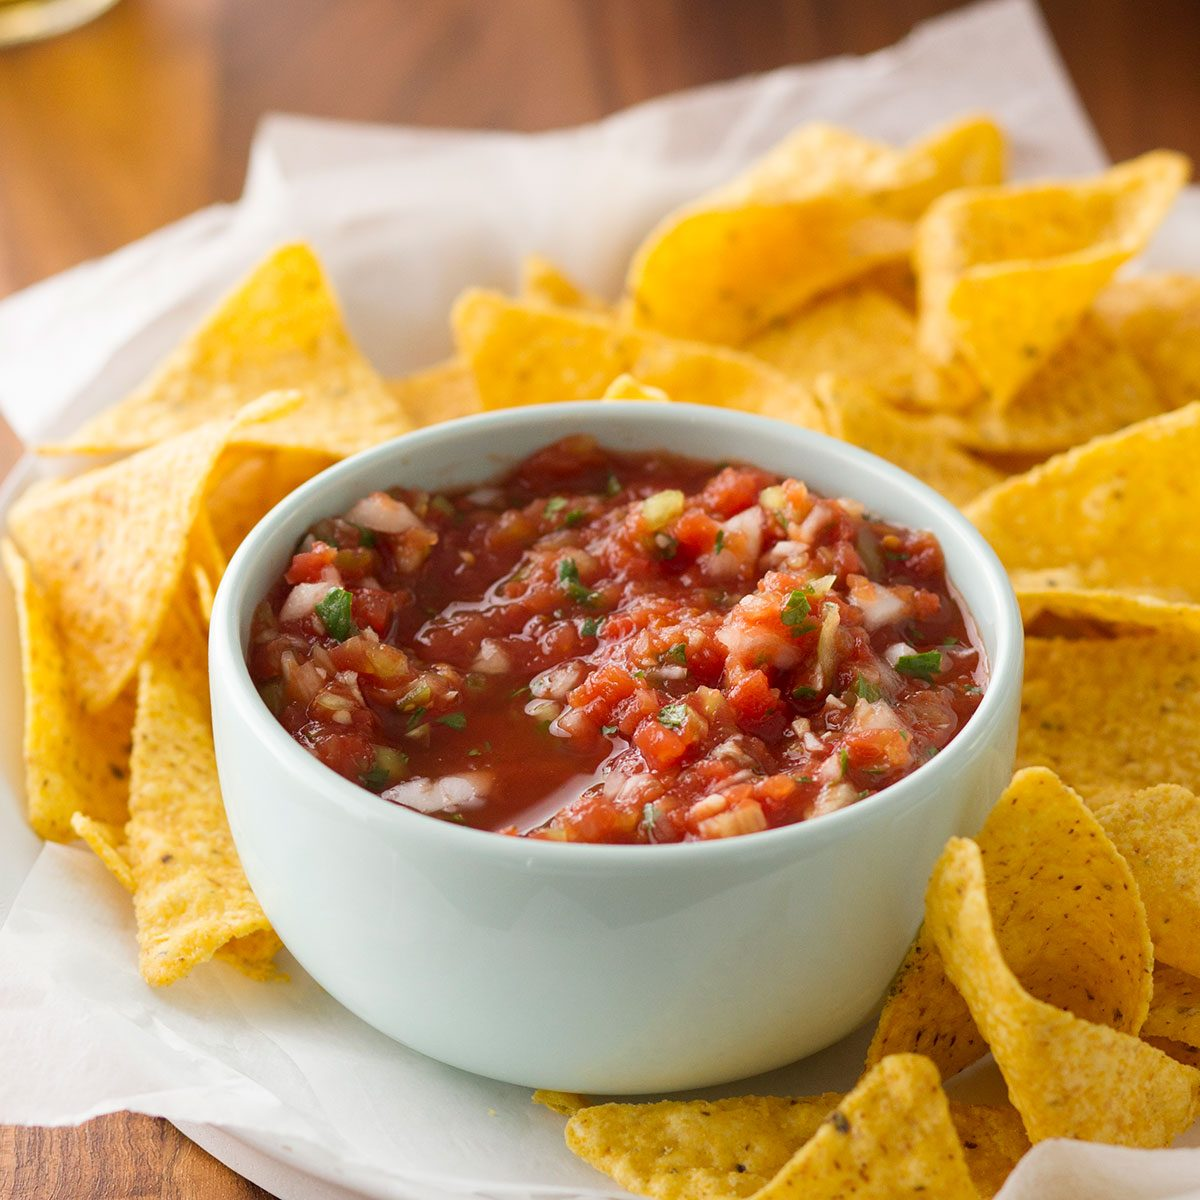 How to Make Restaurant-Style Salsa